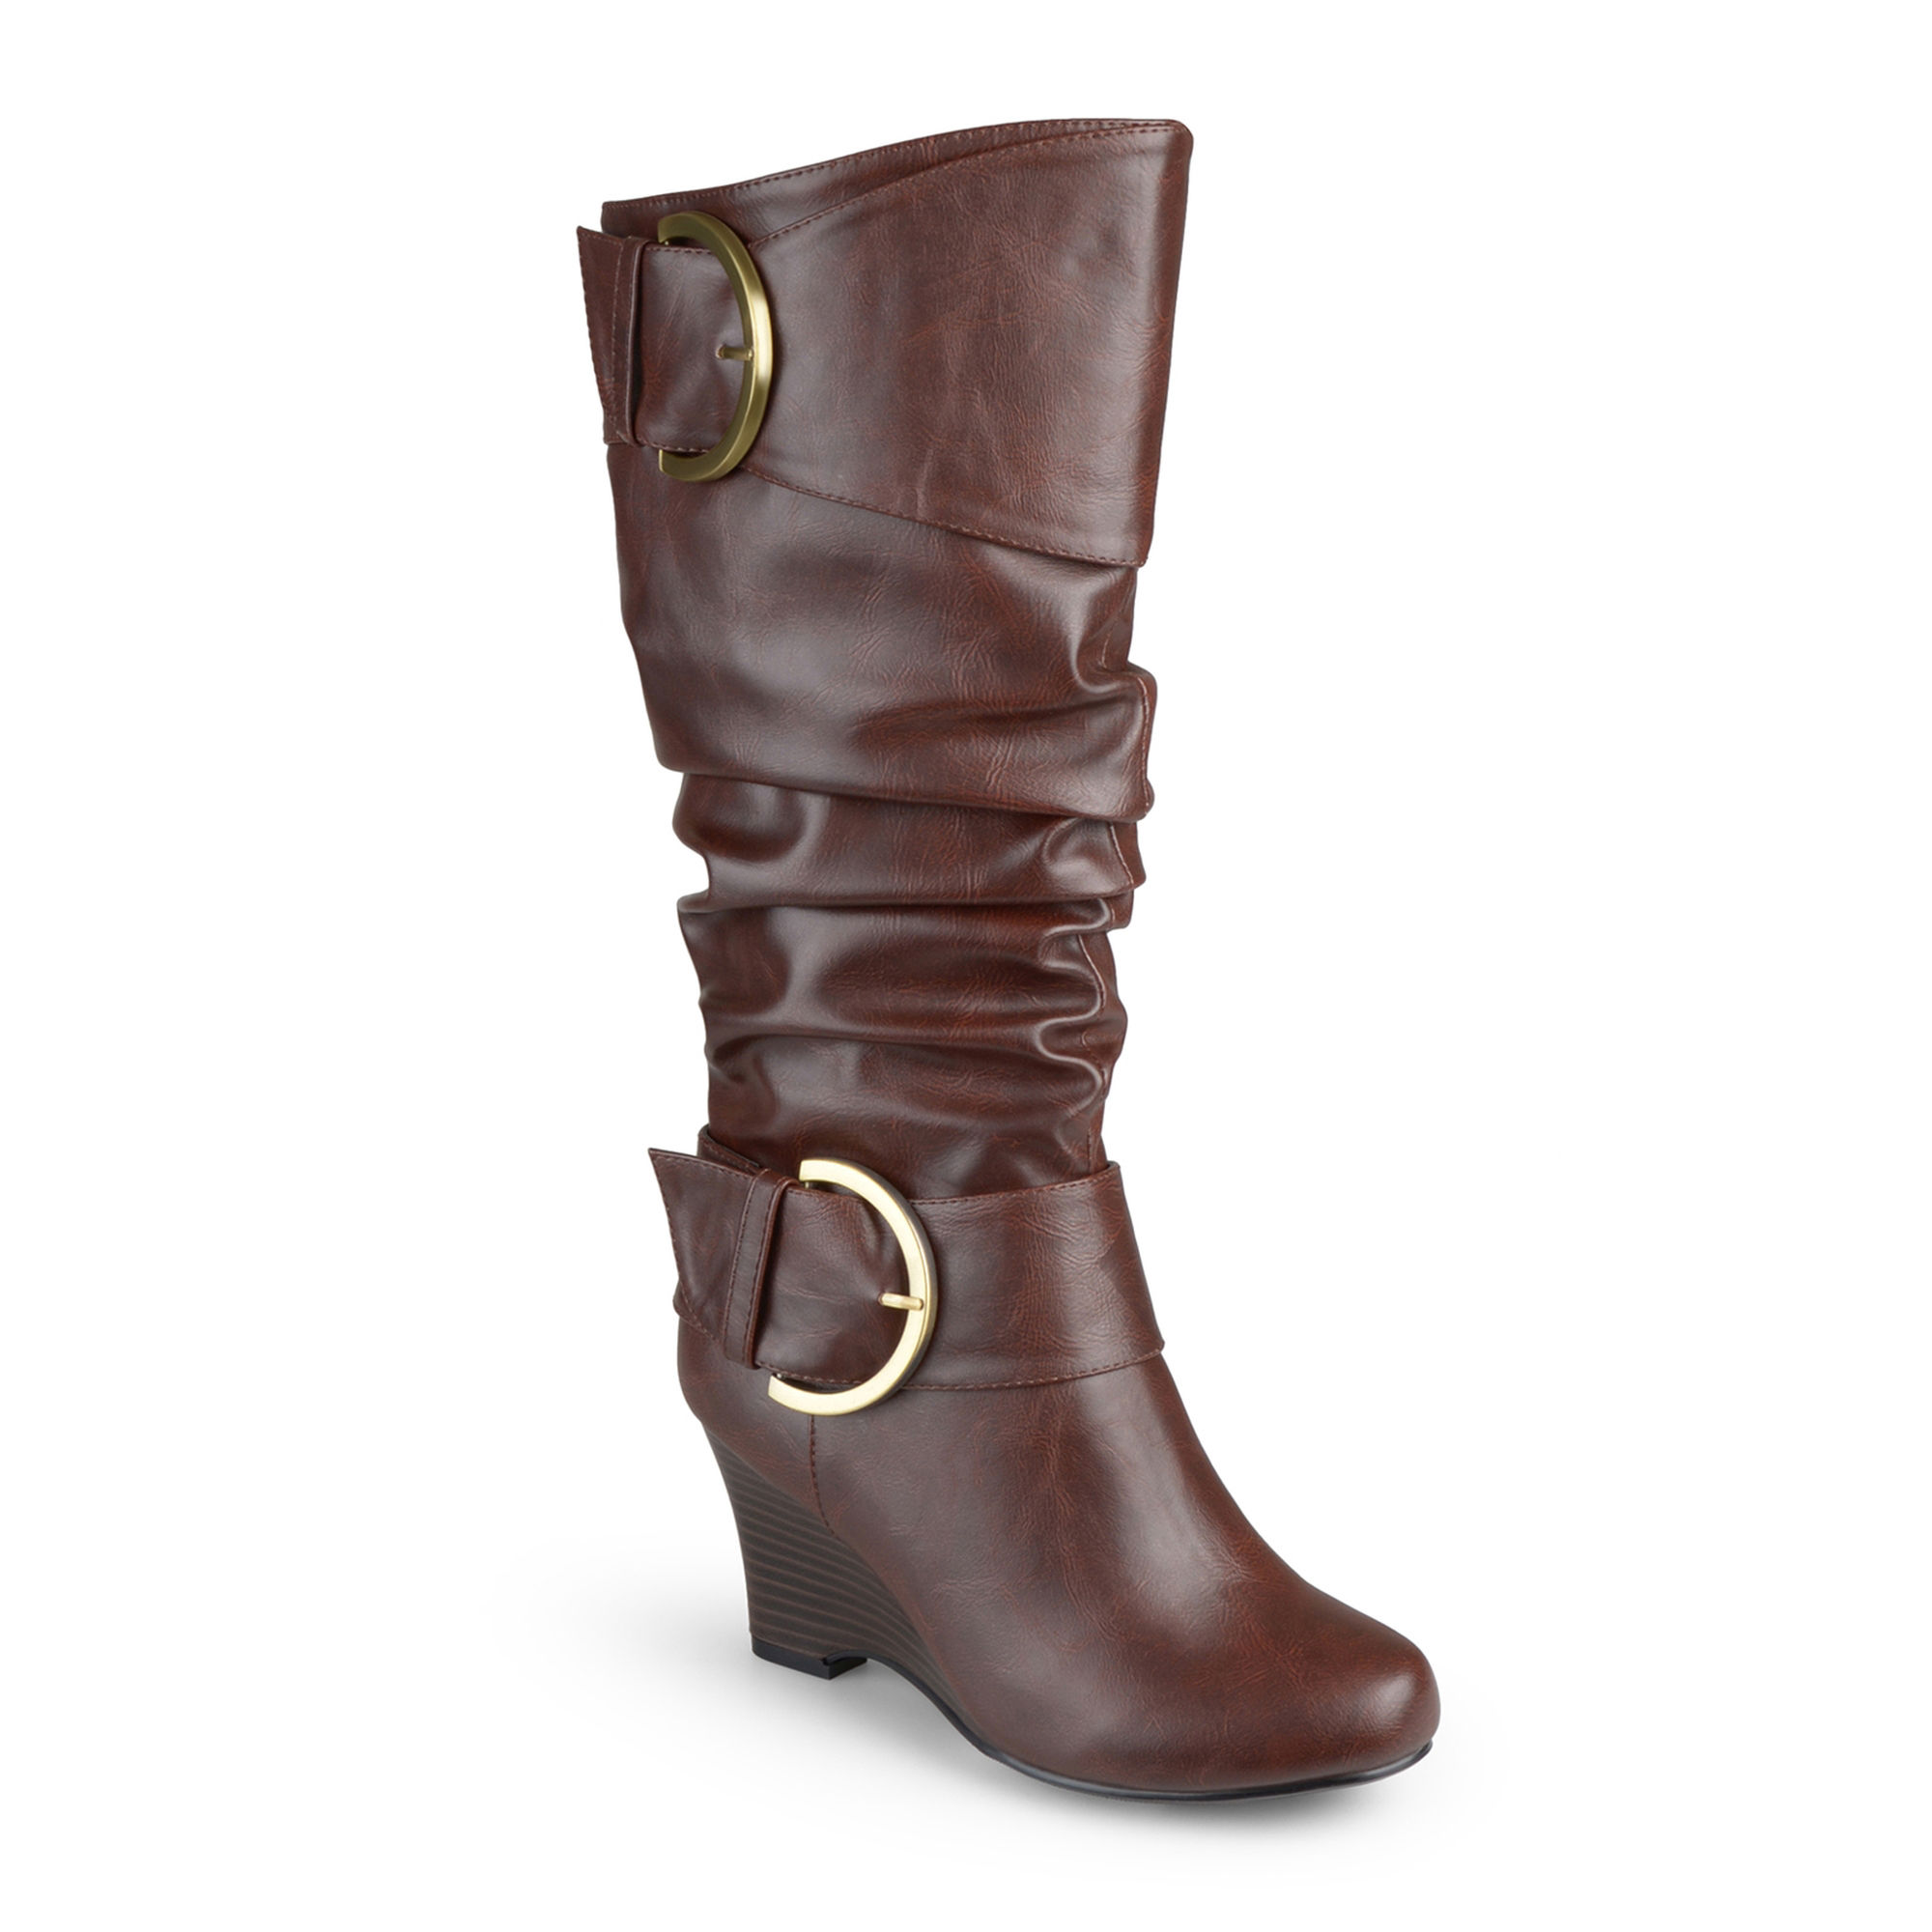 Journee Collection Meme Womens Wide Calf Wedge Boots